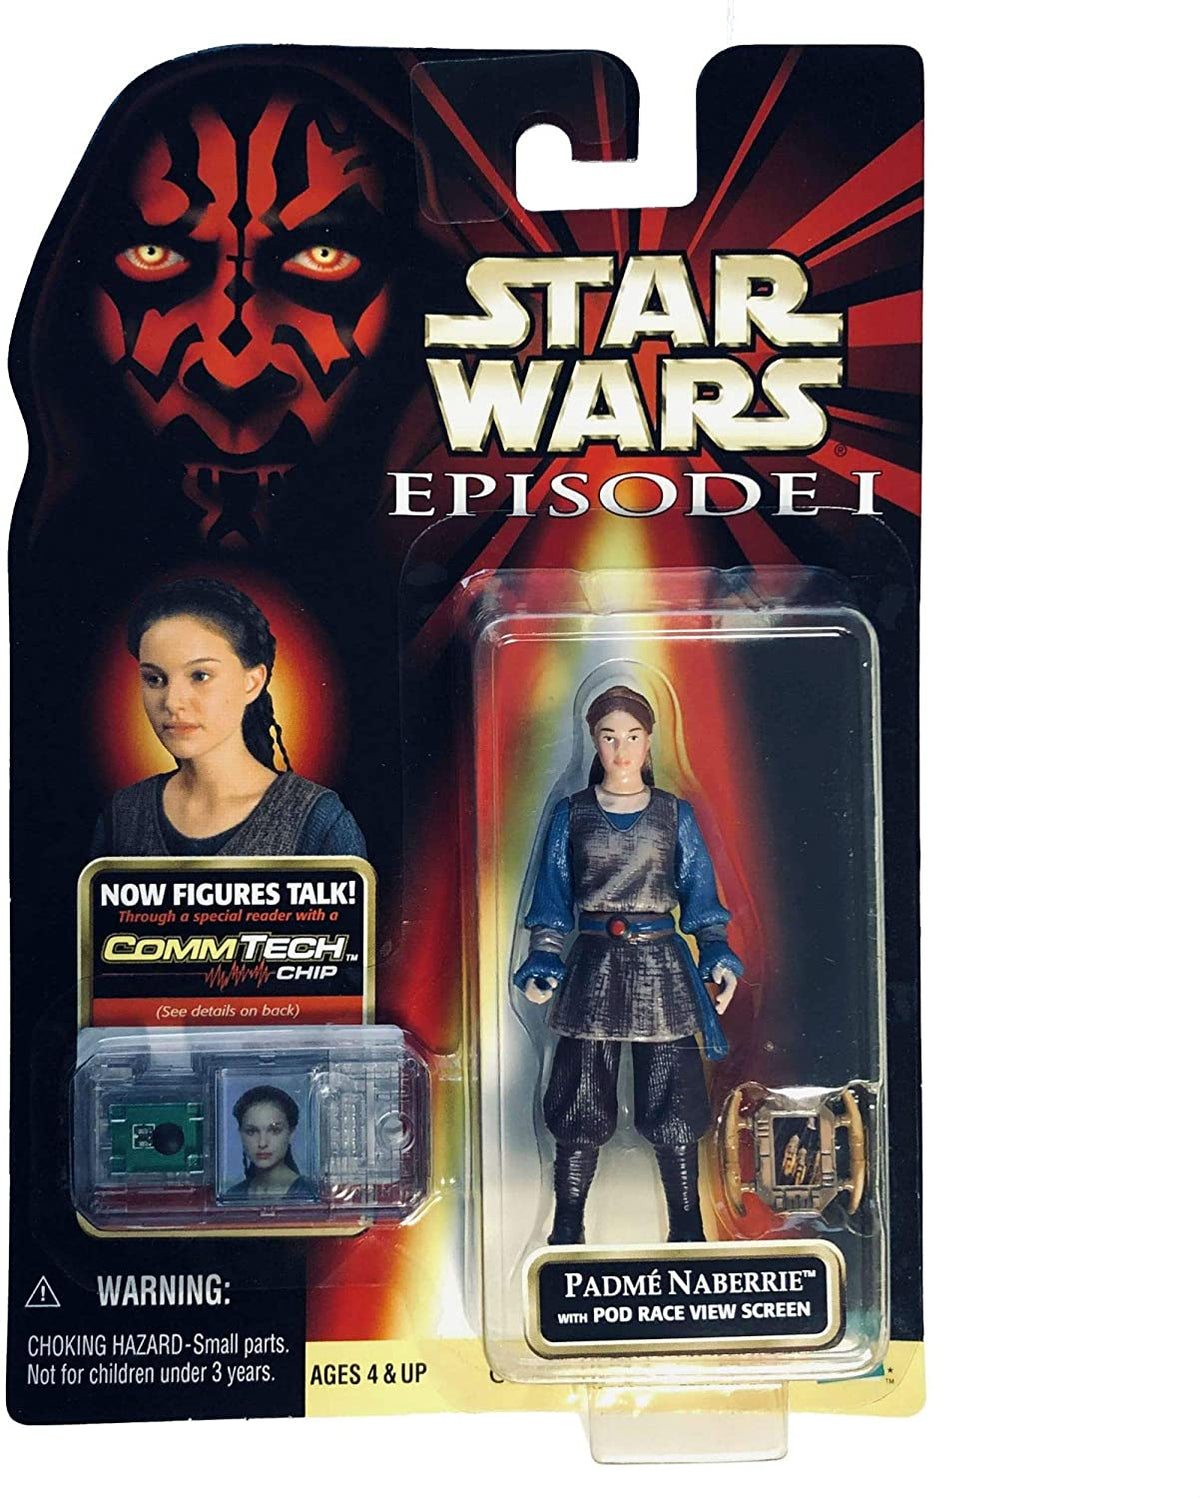 Star Wars Ep I: The Phantom Menace, Padme Naberrie Action Figure